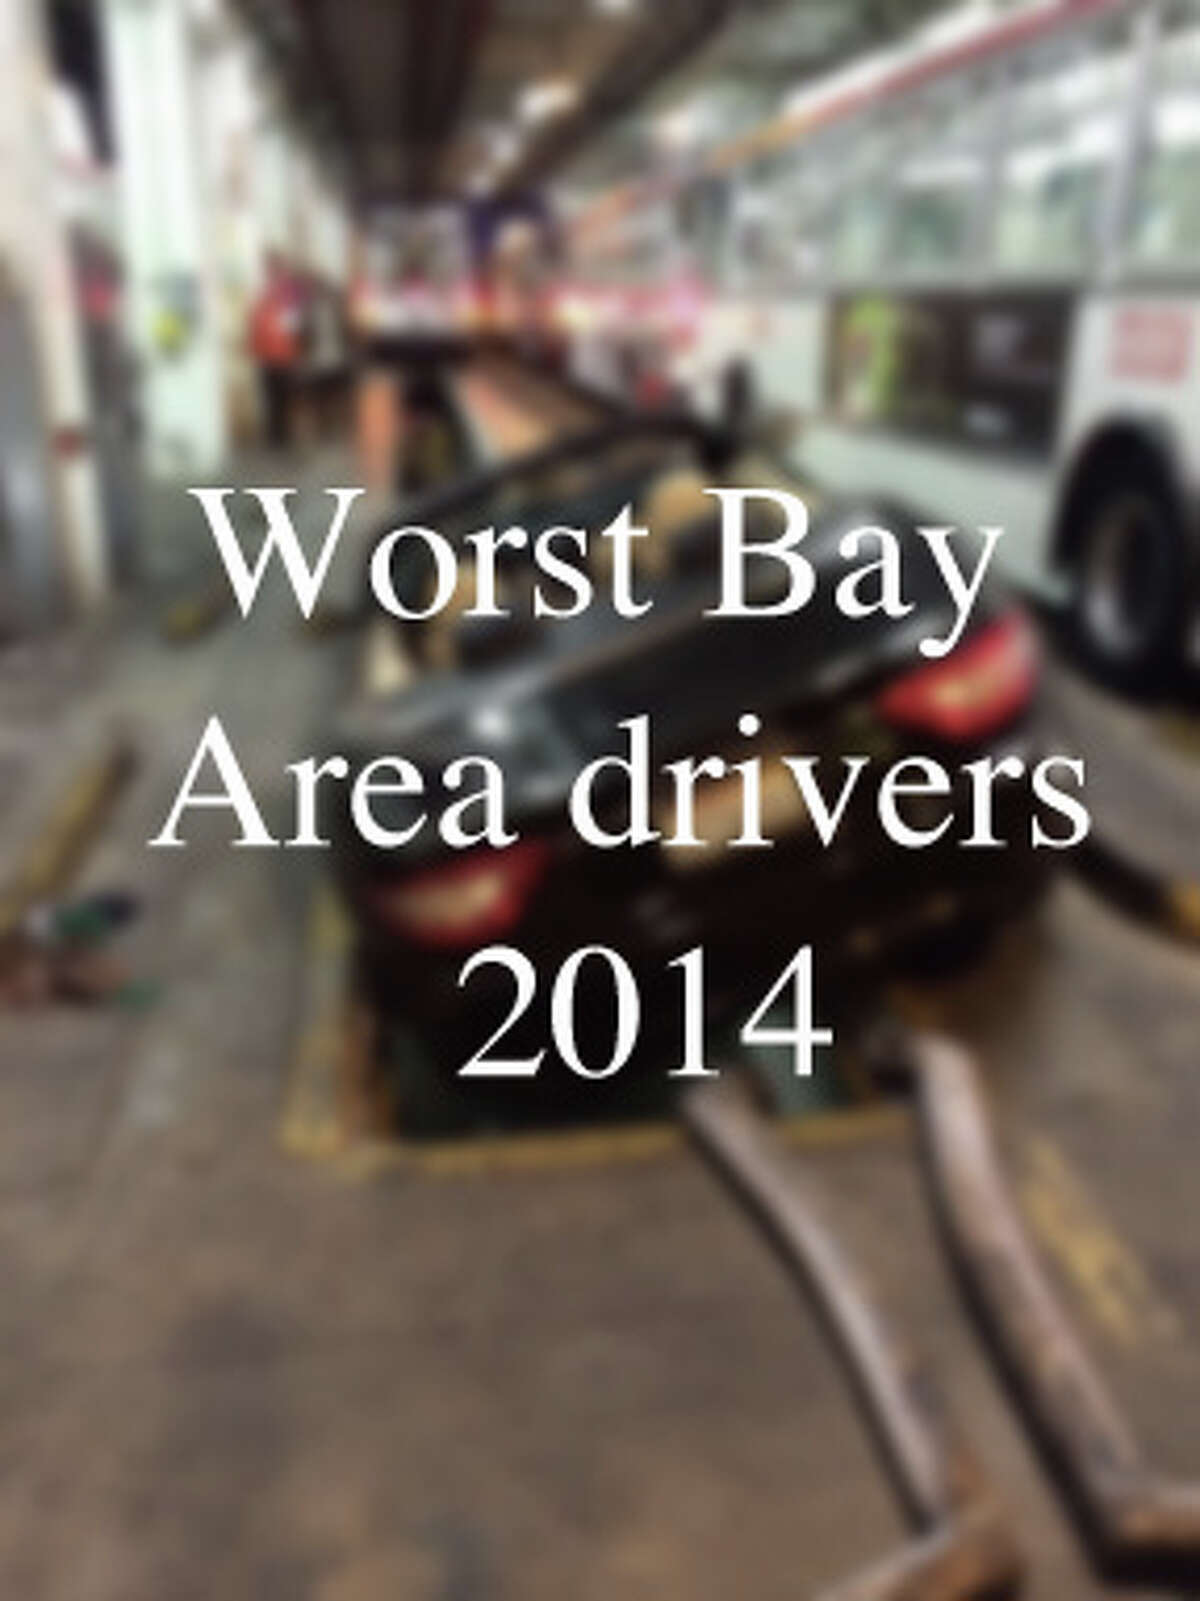 Worst Bay Area drivers - 2014